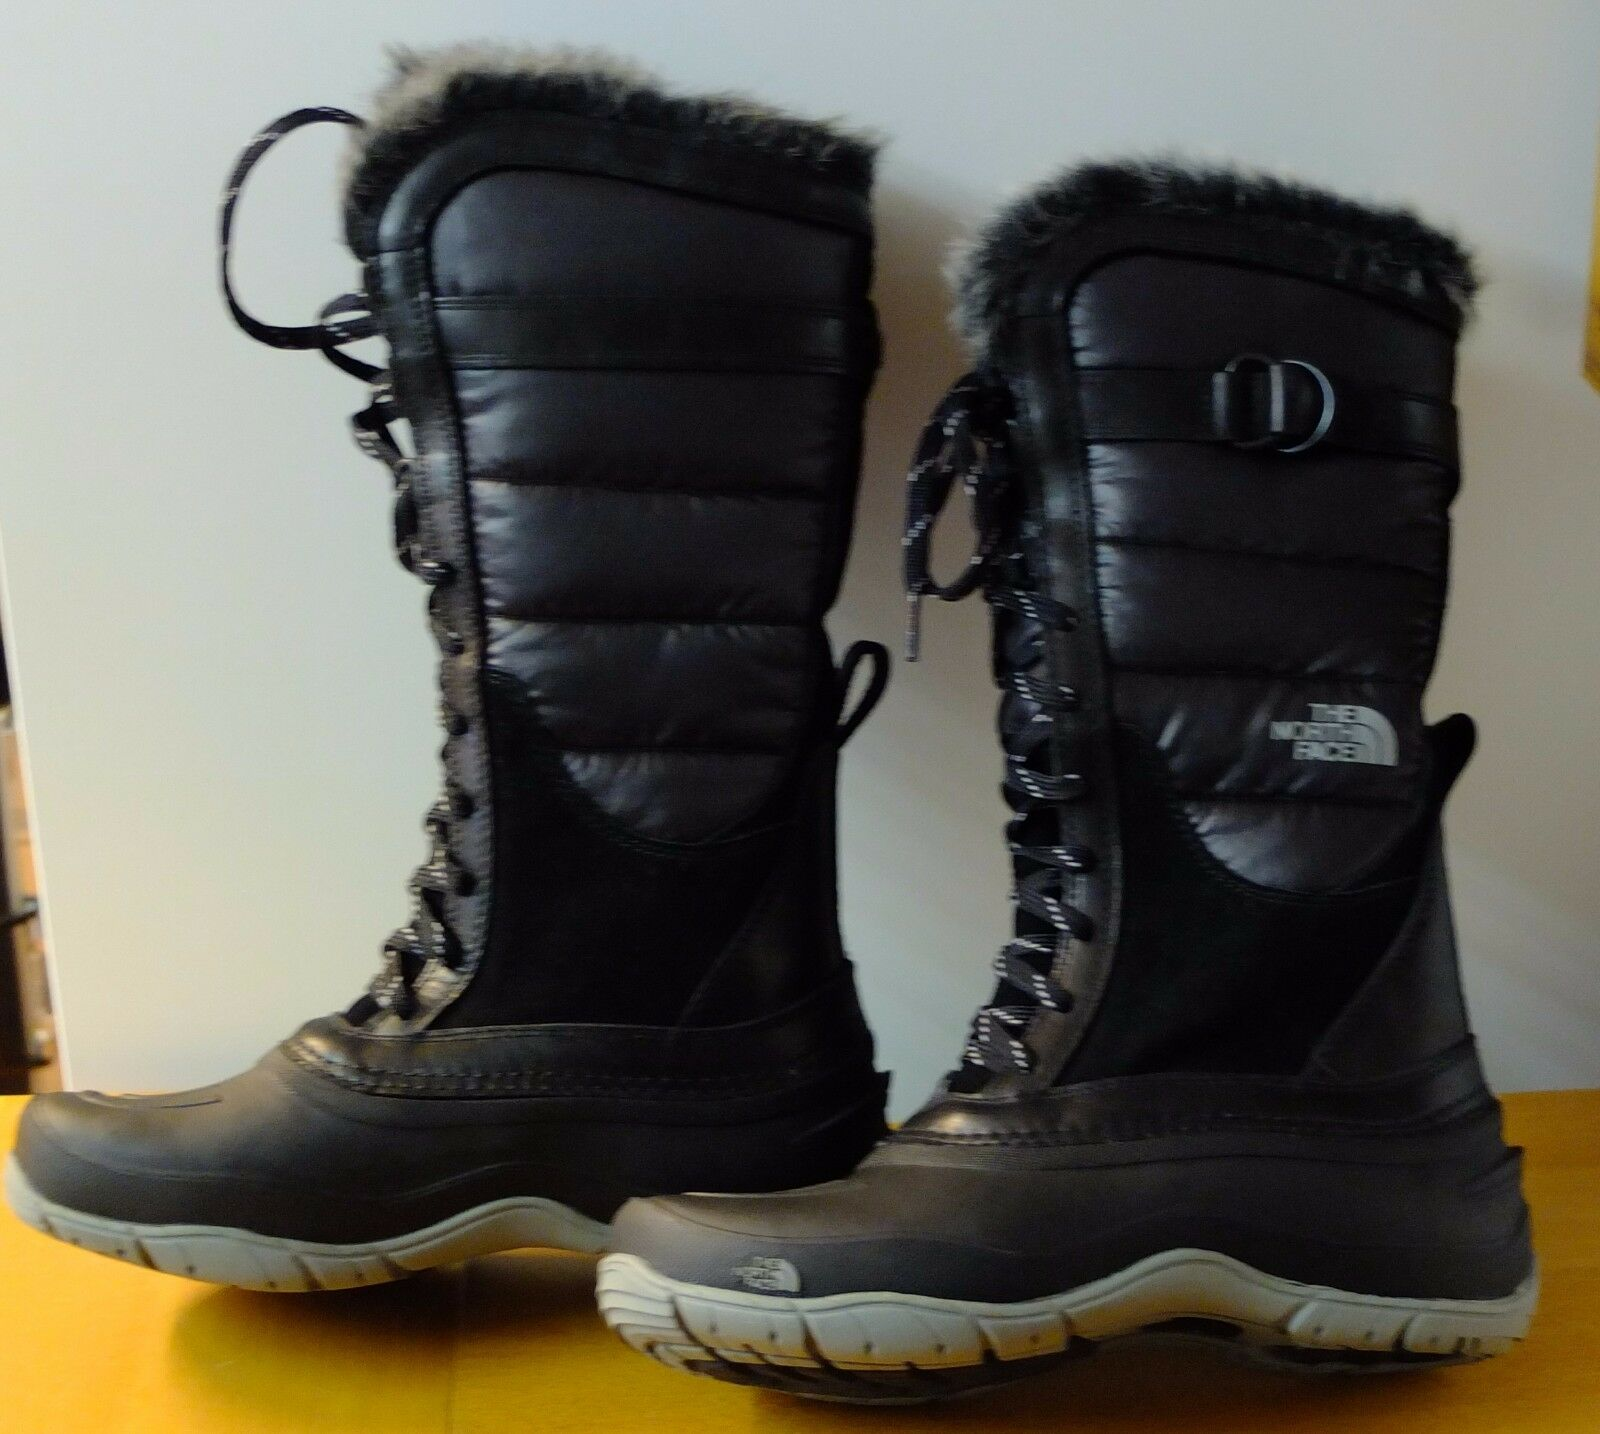 Tolle North Face Winterstiefel Fashion Modell Shellista Gr. 37,5 @KLASSE@